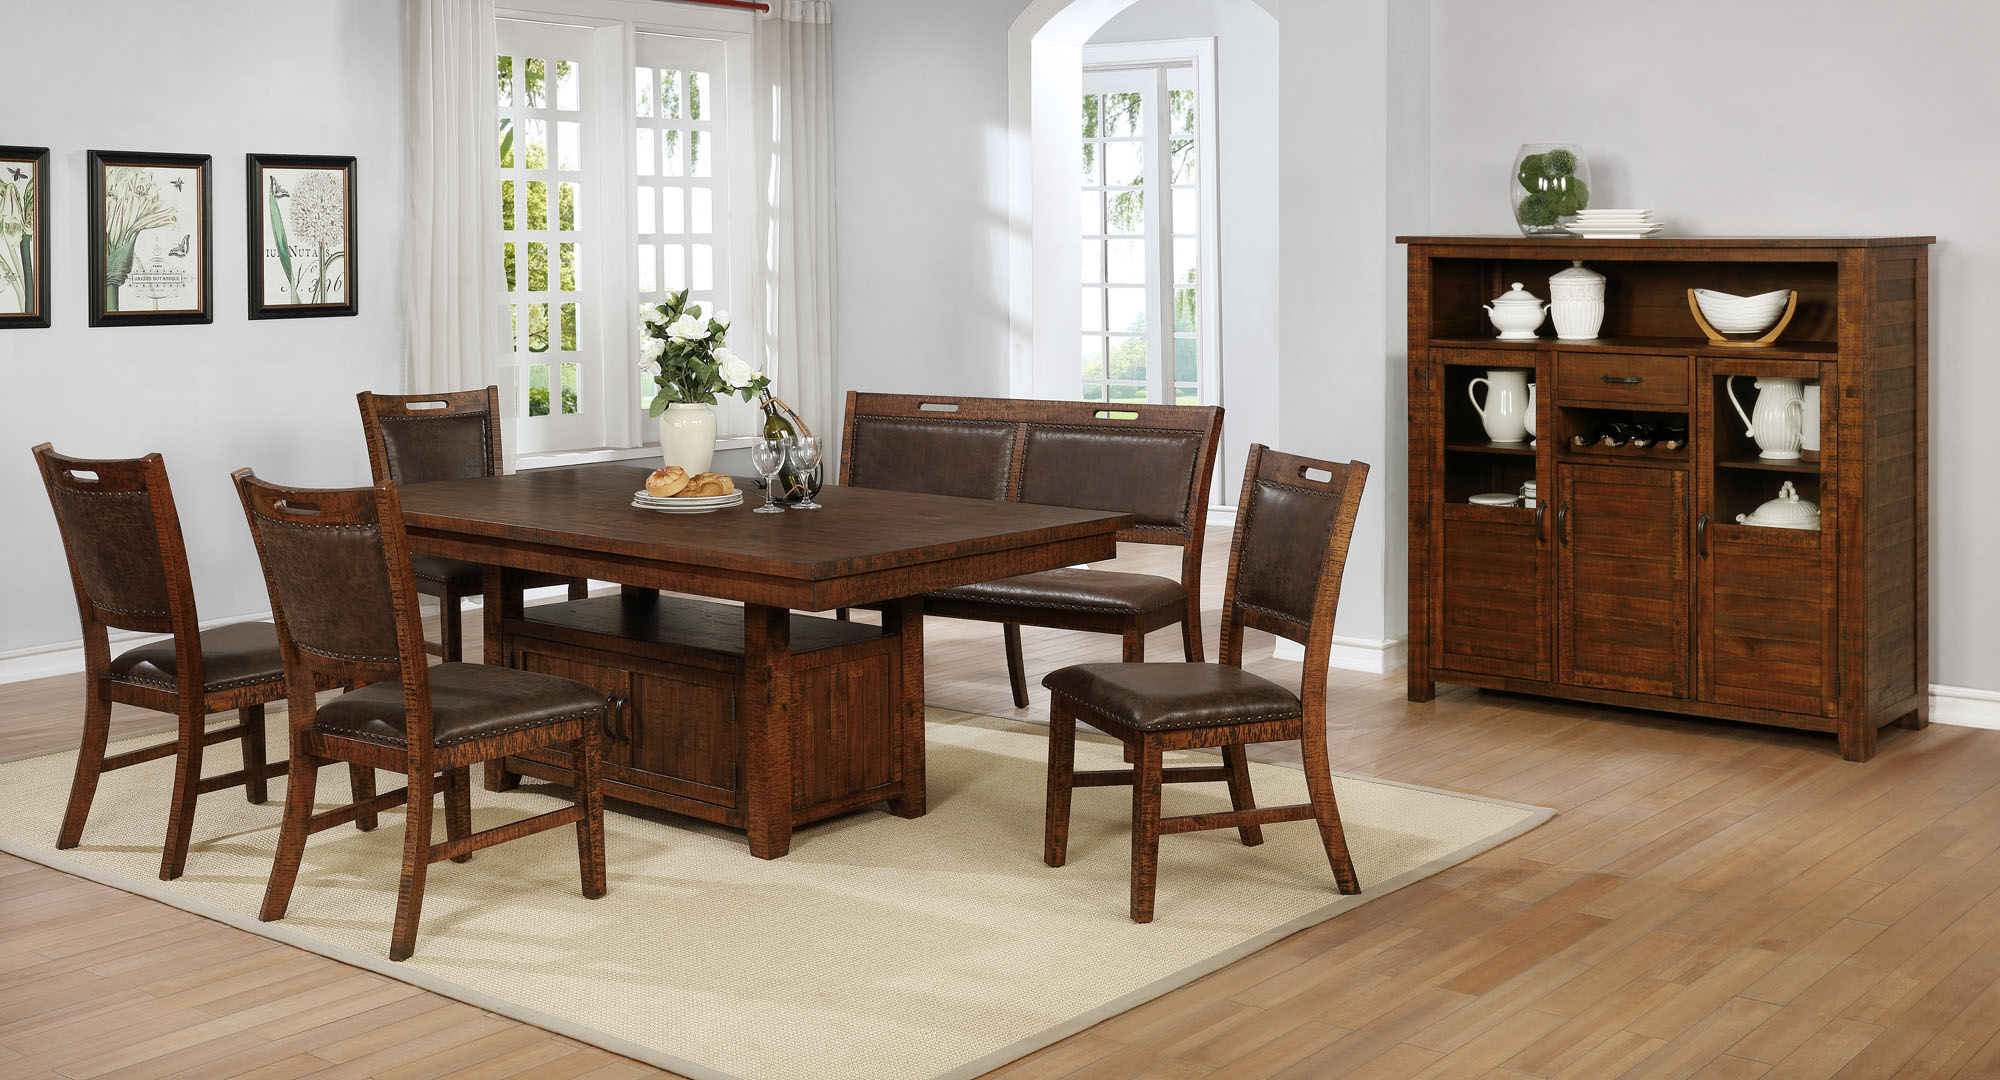 1842 Jonah 6pc - Table, Bench, & 4 Chairs $959.99